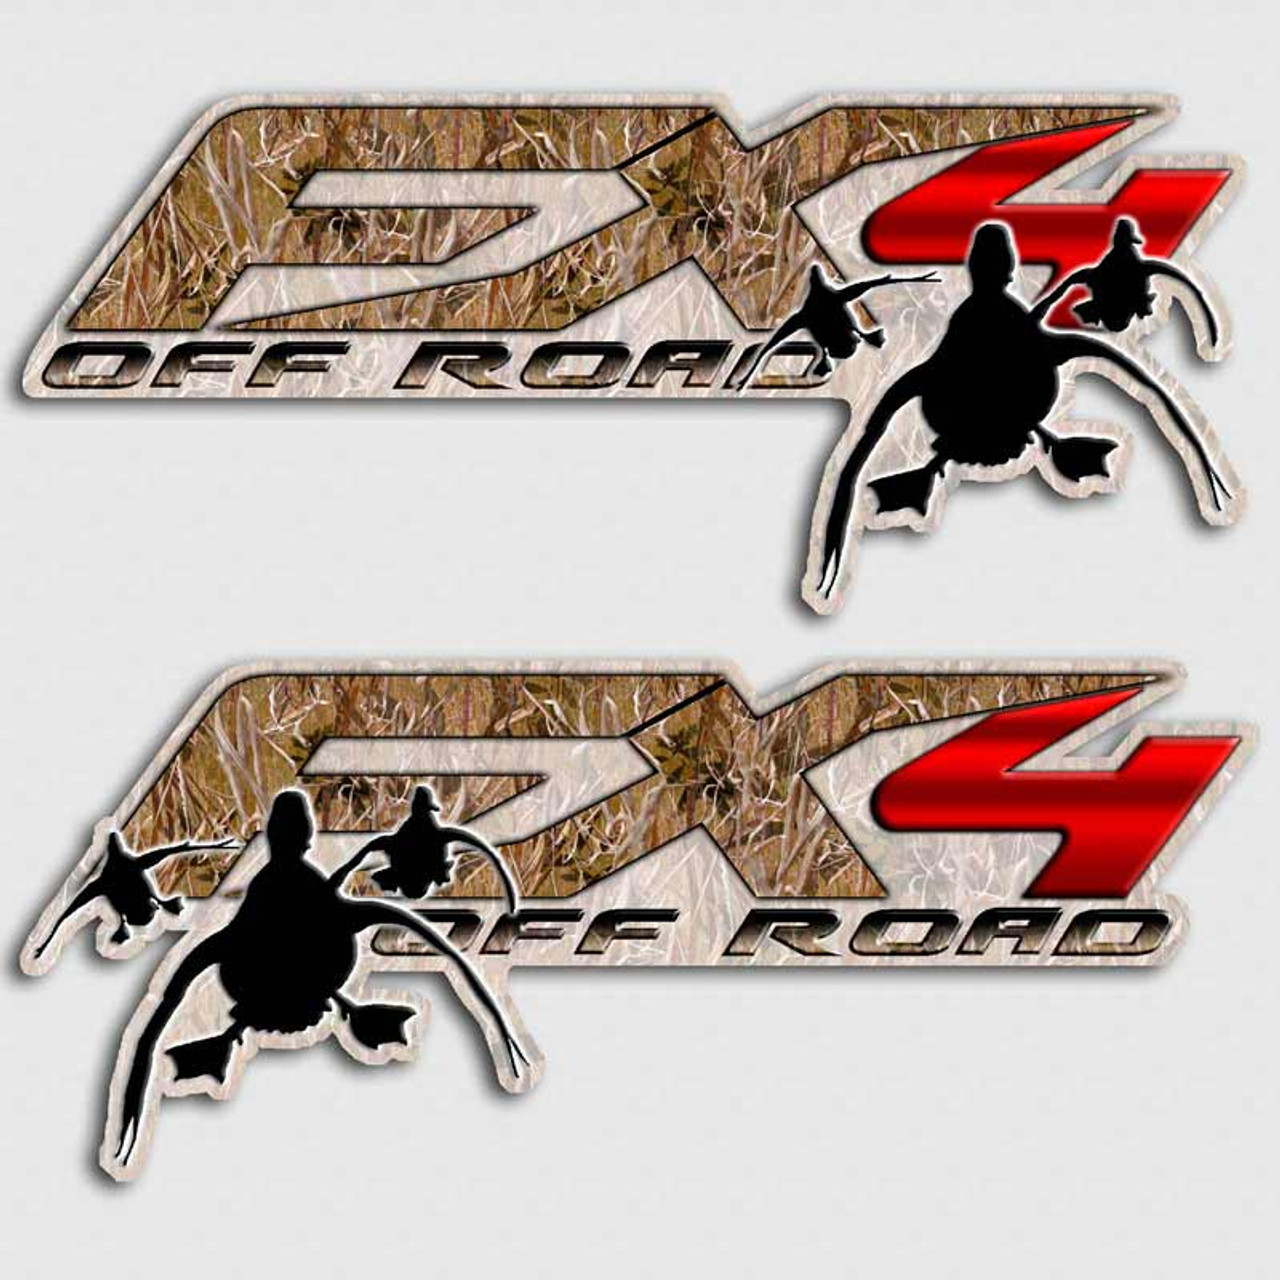 FX Duck Hunting Stickers Aftershock Decals - Hunting decals for truckshuntingfishing window decals in white or camouflage at woods